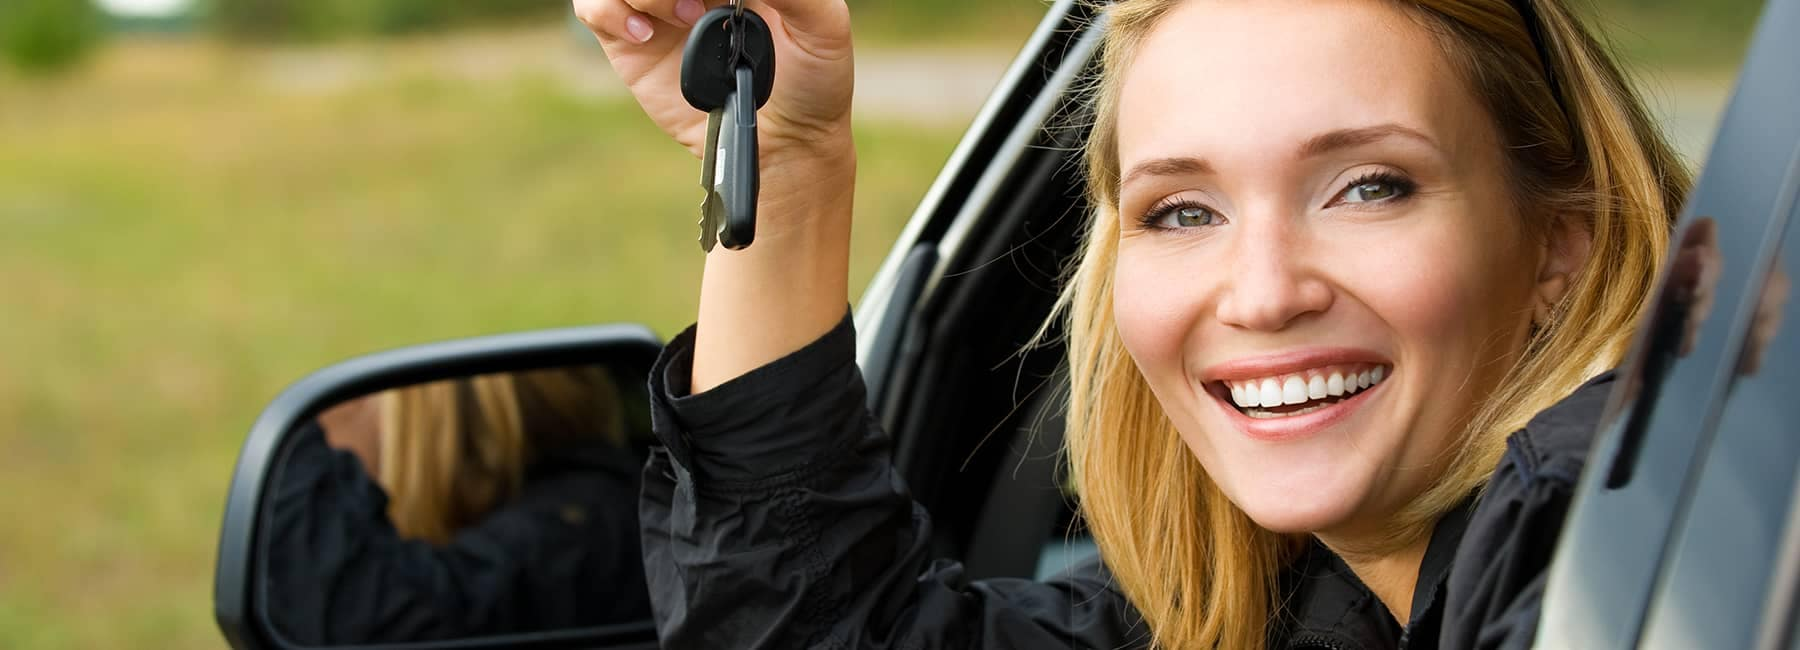 woman leaning out of car smiling with her car keys